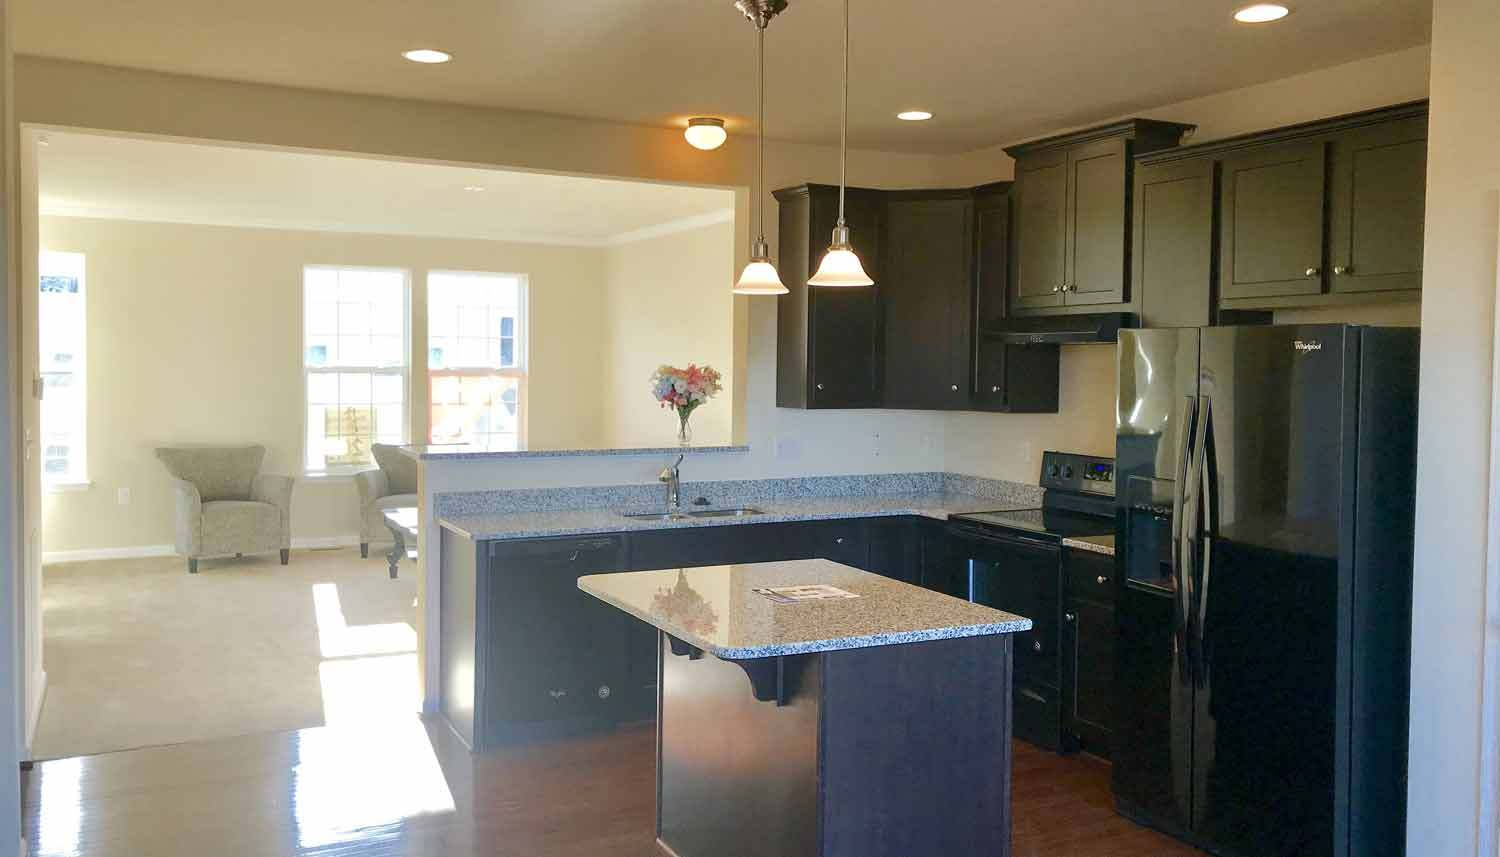 Additional photo for property listing at Yorktown Ii 171 Schramm Loop Stephens City, Virginia 22655 United States